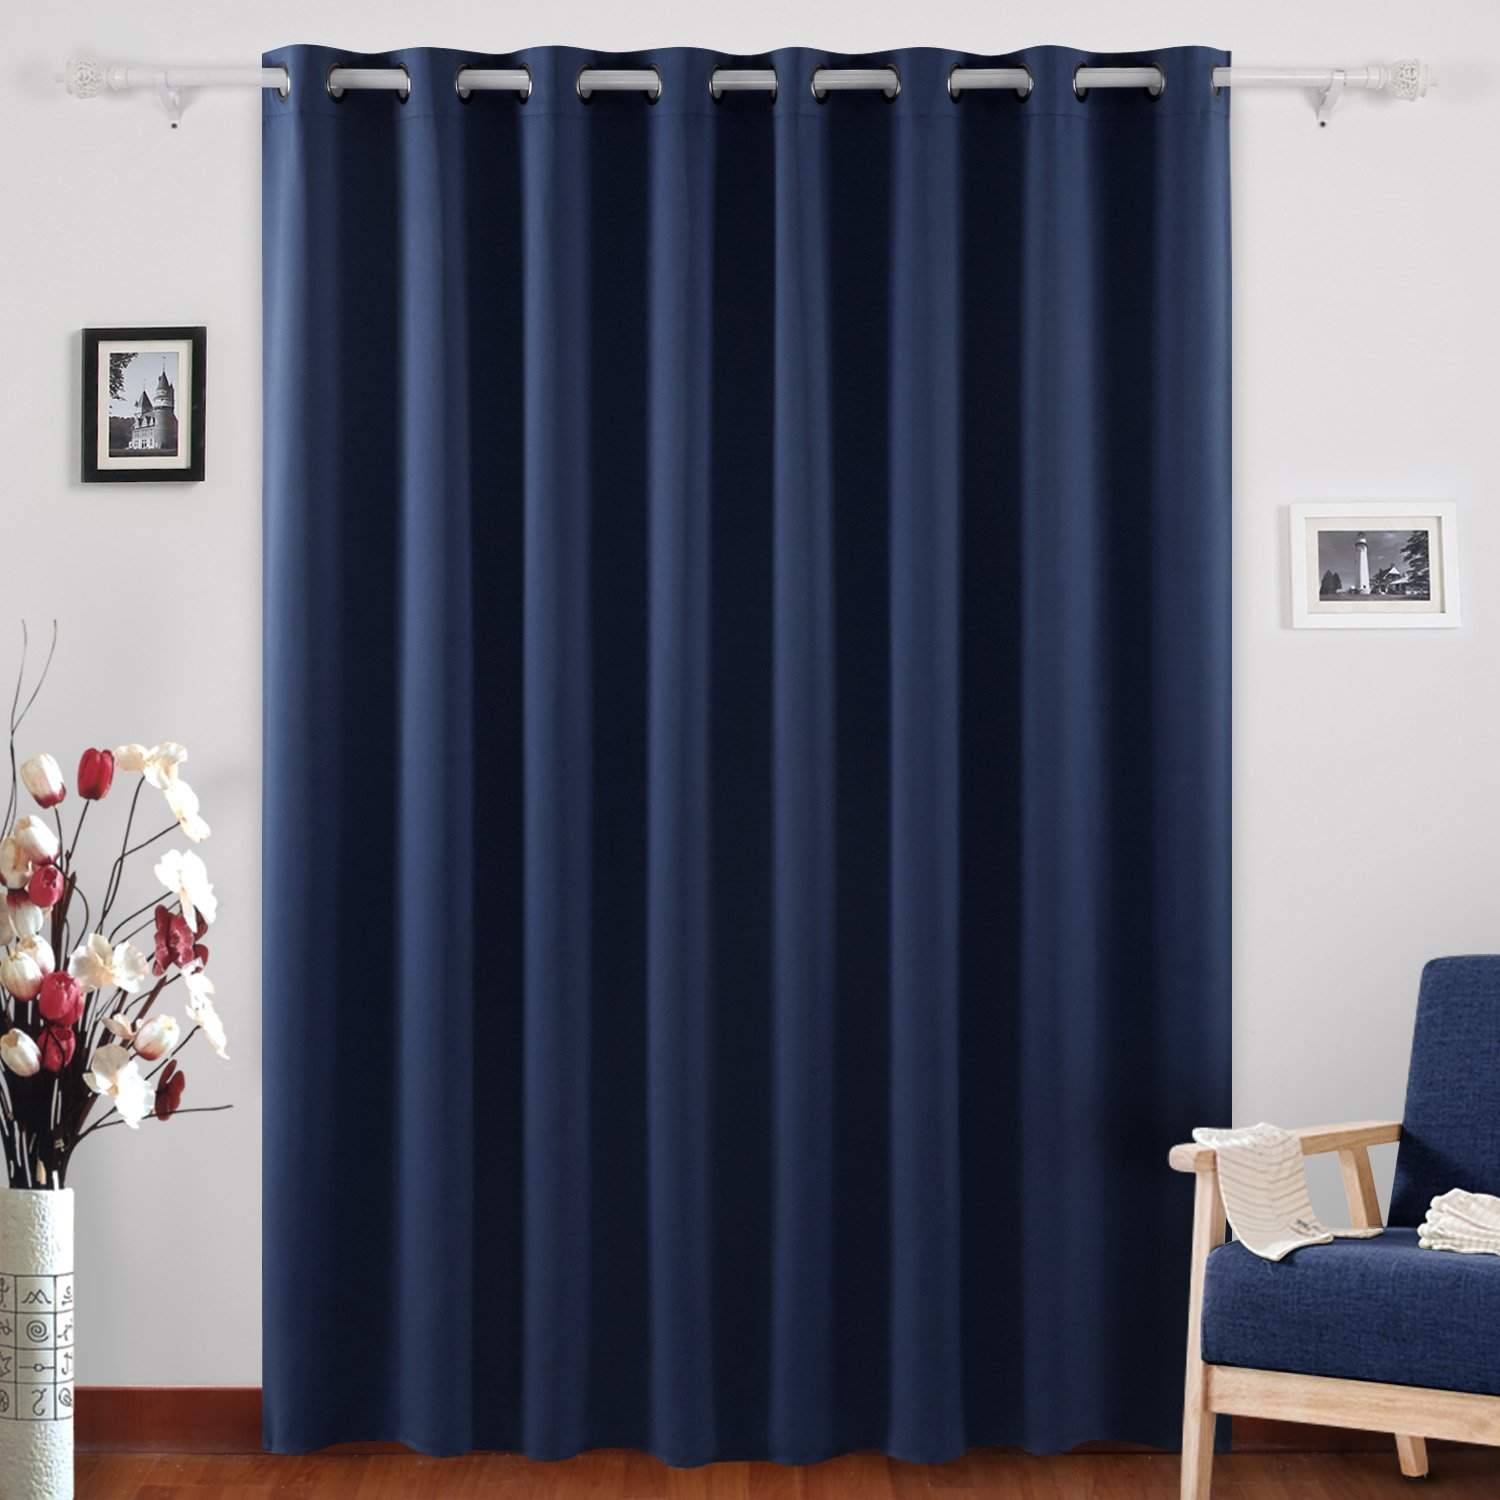 overstock curtains home free panel width garden blackout curtain shipping aurora wide grommet linen look product today heathered